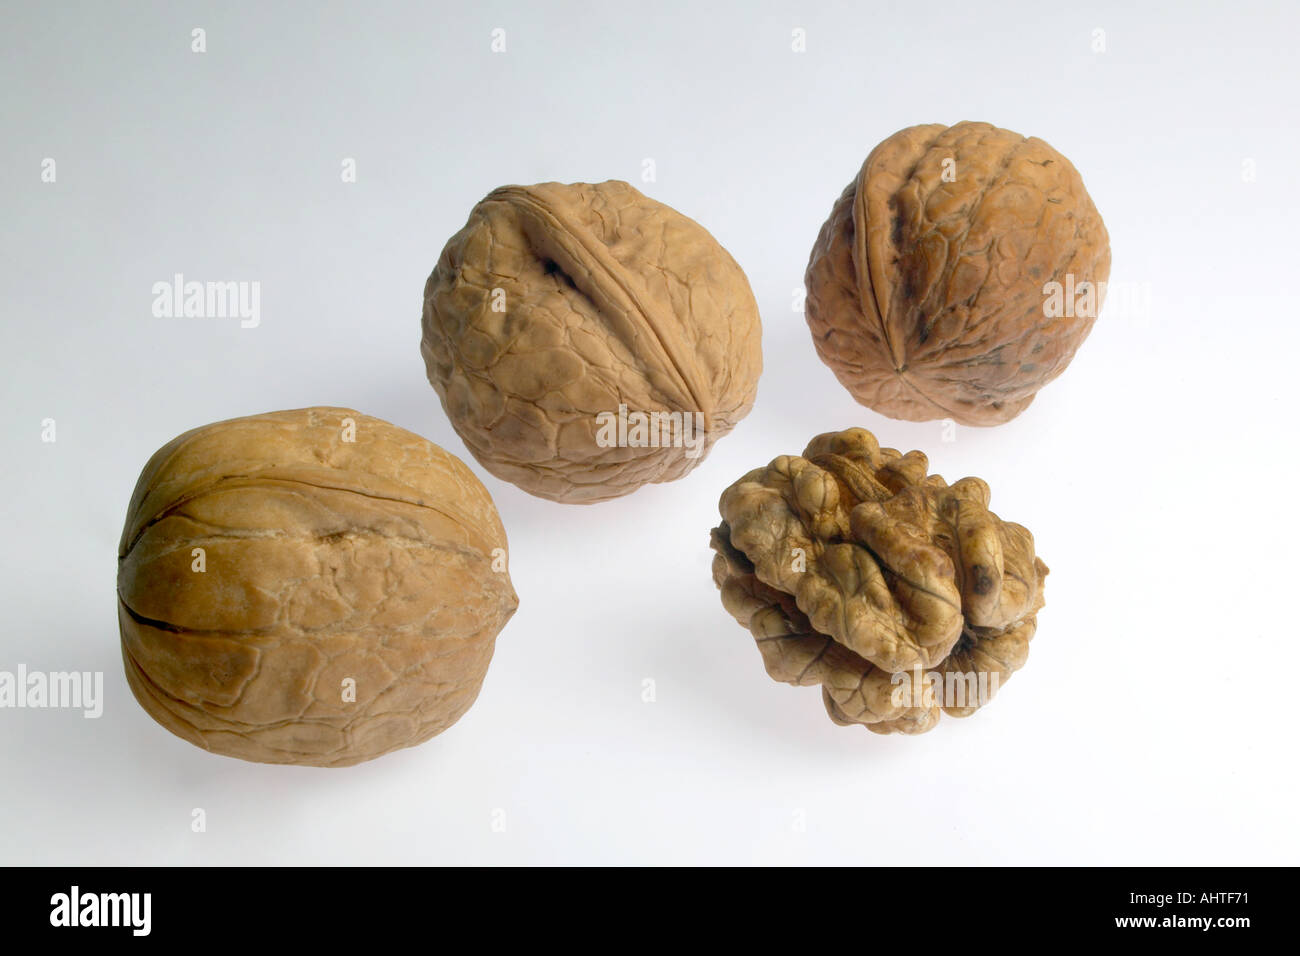 AAD91587 4 Four pieces of dry fruit walnut three in shell one open nut snack food - Stock Image